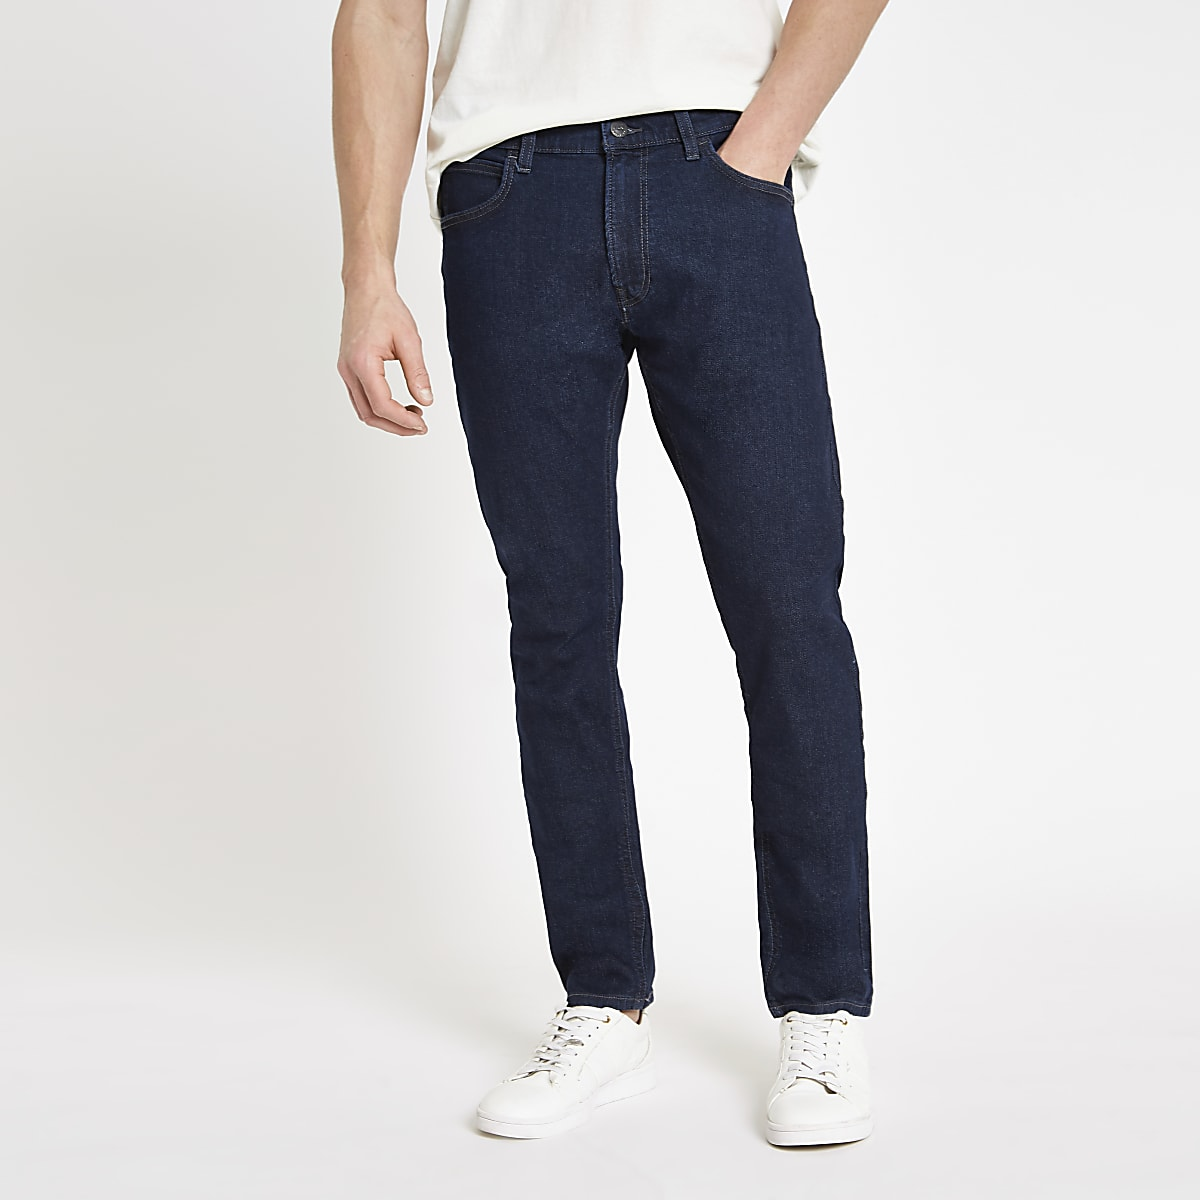 9789a200 Lee blue tapered slim fit jeans - Tapered Jeans - Jeans - men